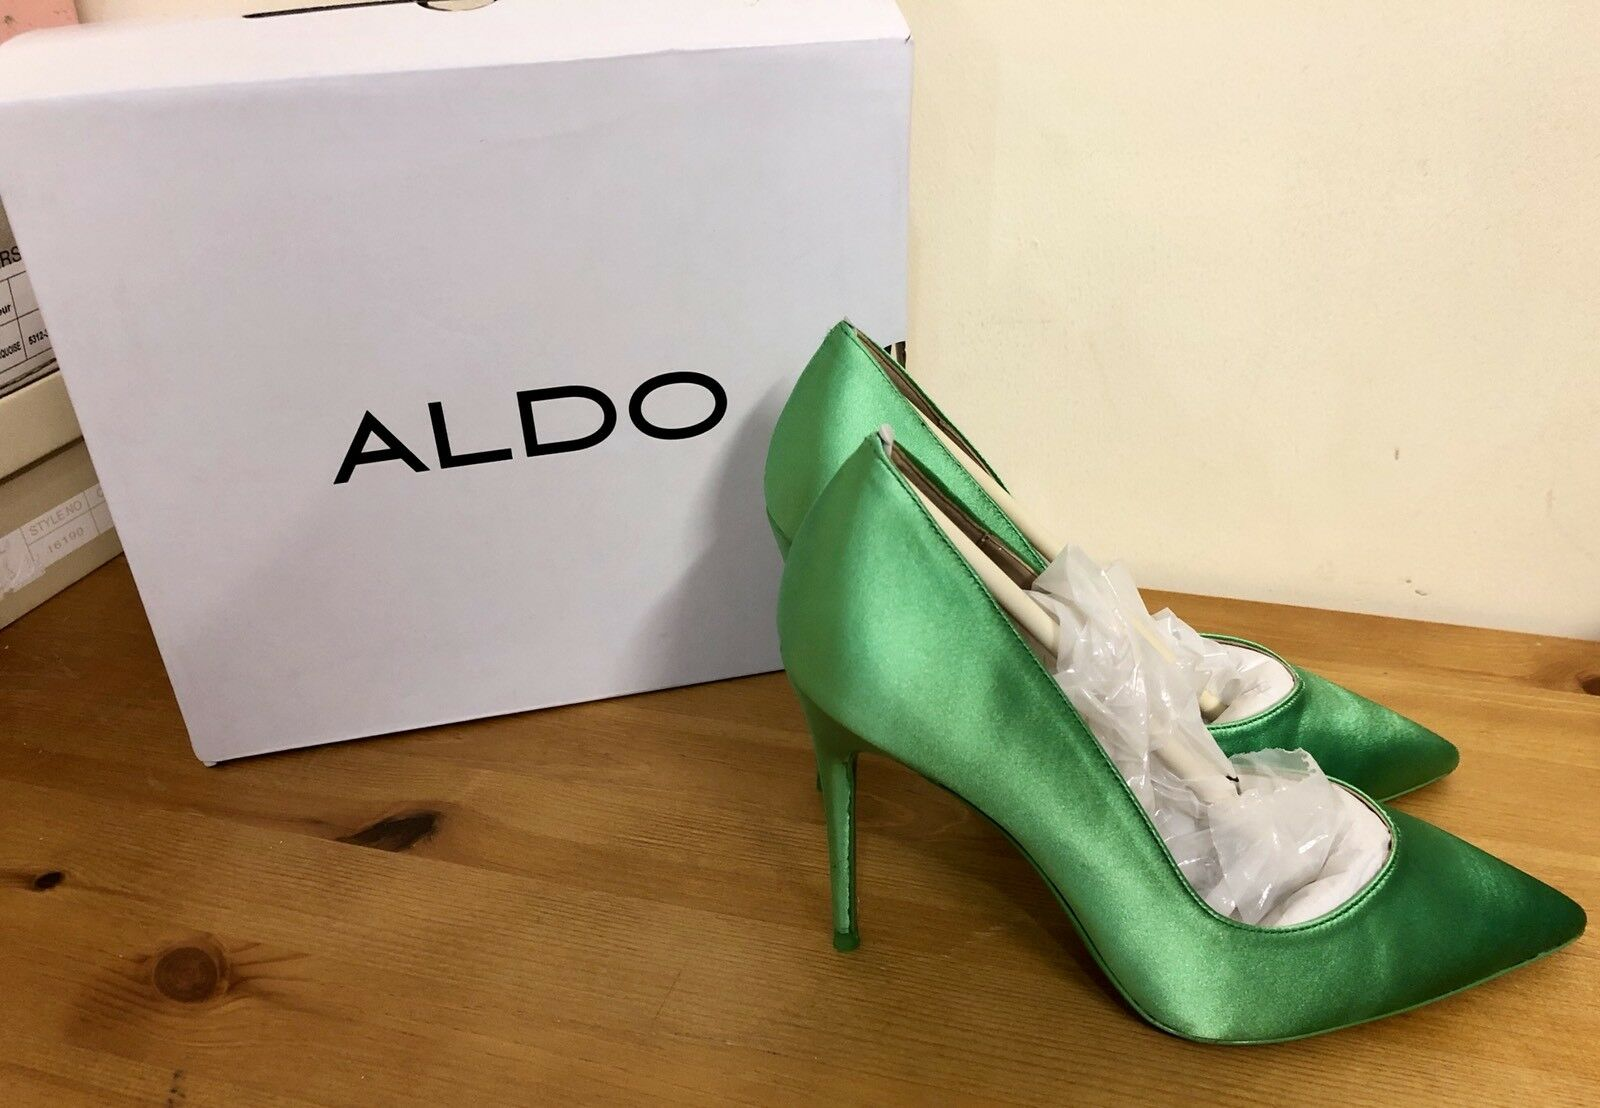 ALDO ALEANI LADIES HIGH HEEL SHOES UK SIZE 5 GREEN NEW BOXED HEELS WOMAN PARTY